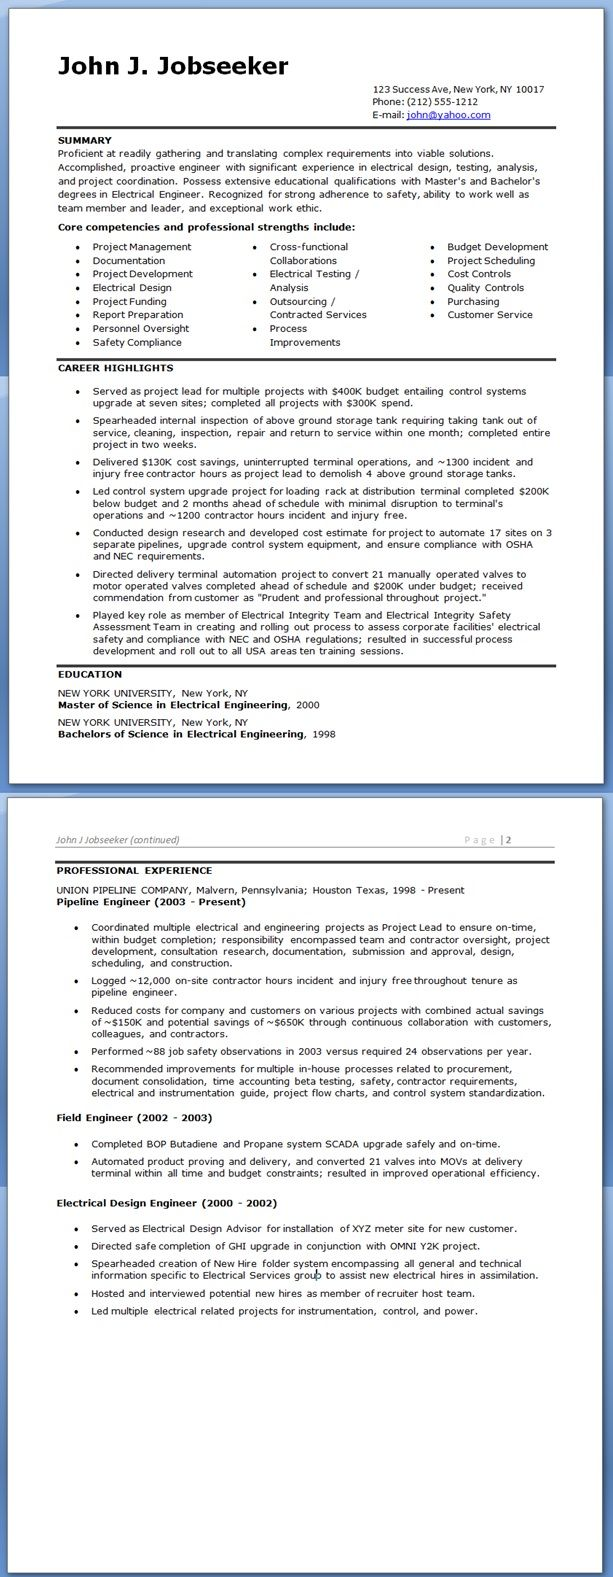 Engineering Resume Builder Model Resume For Electrical Engineer Radiovkm Tk